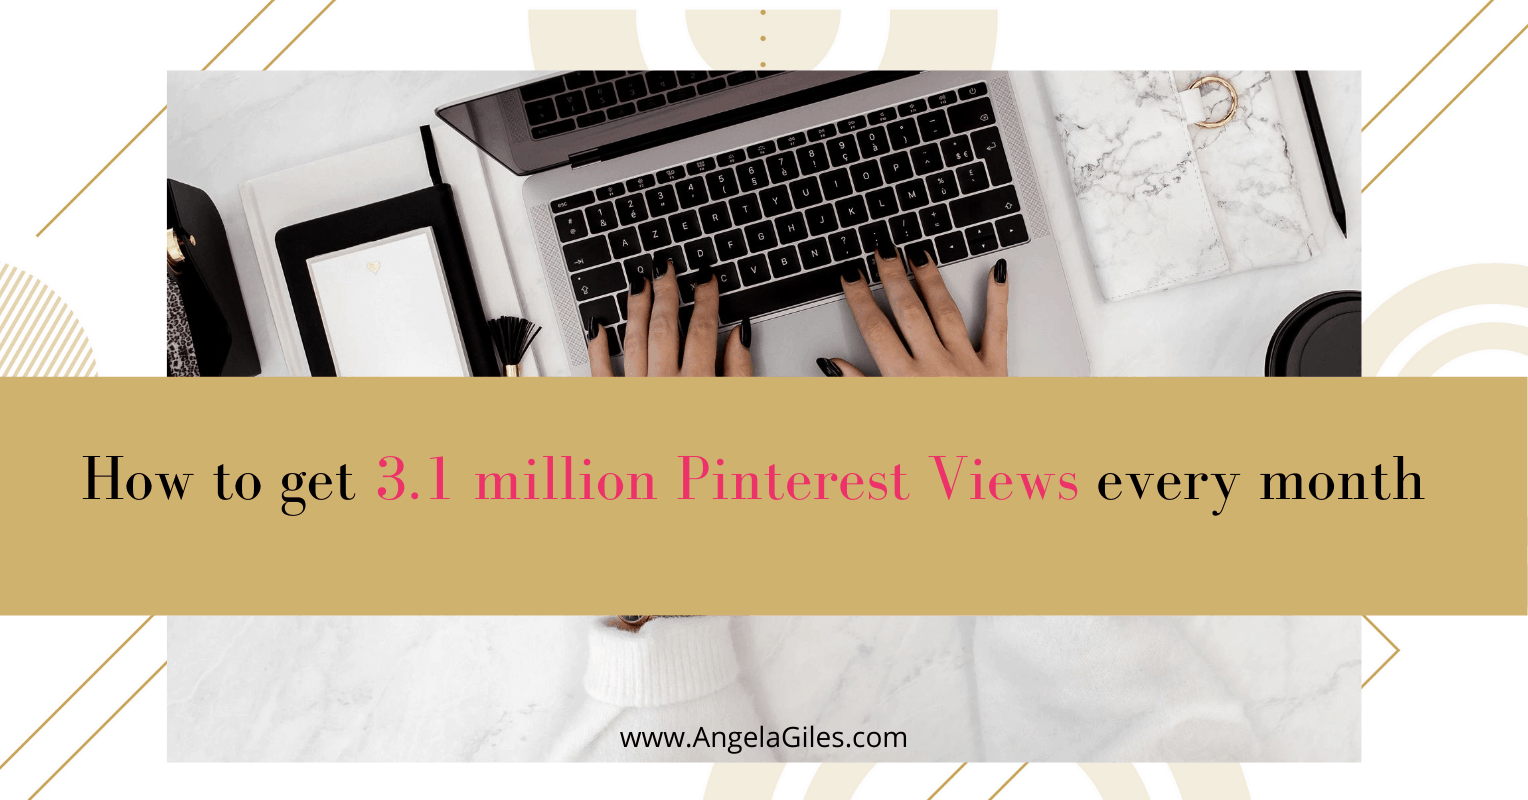 How to Get 3.1 Million Pinterest Views a Month